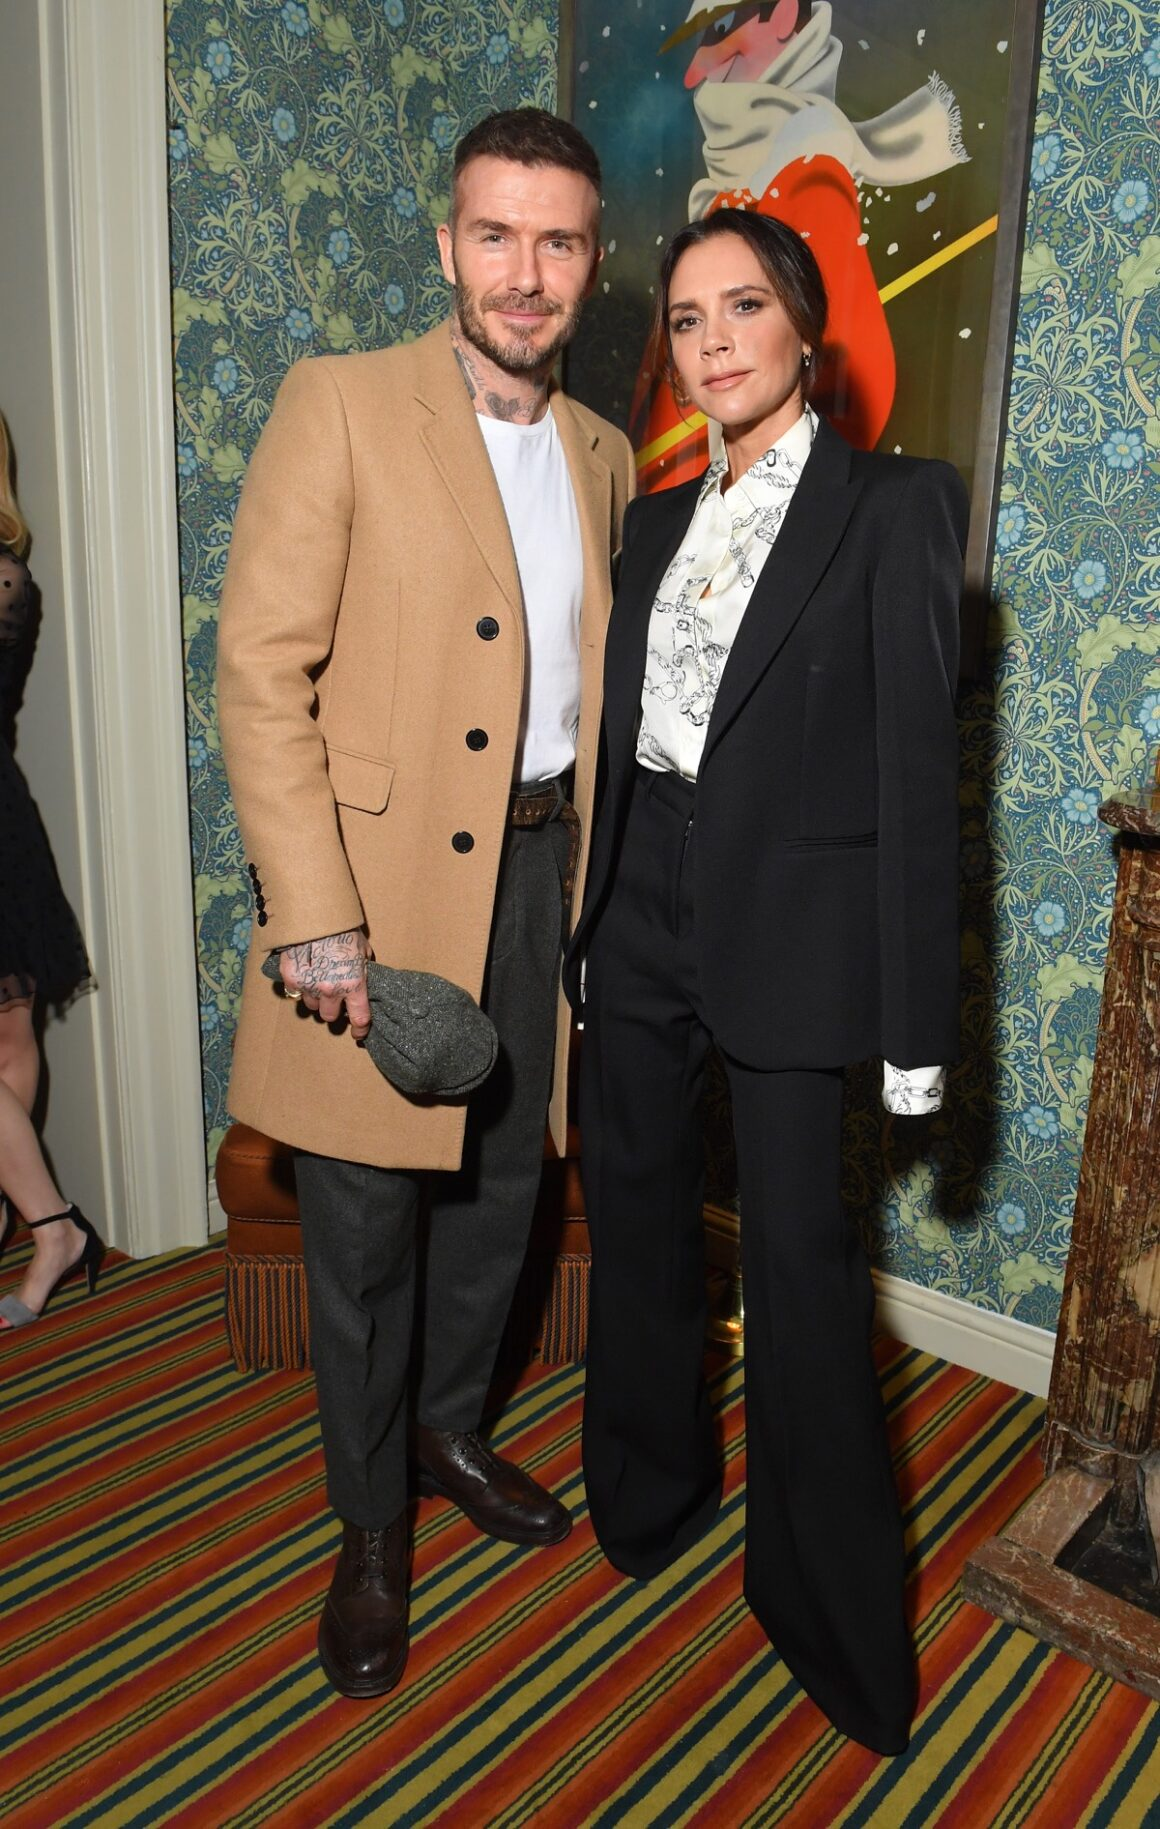 Victoria Beckham x YouTube Fashion & Beauty After Party at London Fashion Week Hosted by Derek Blasberg and David Beckham